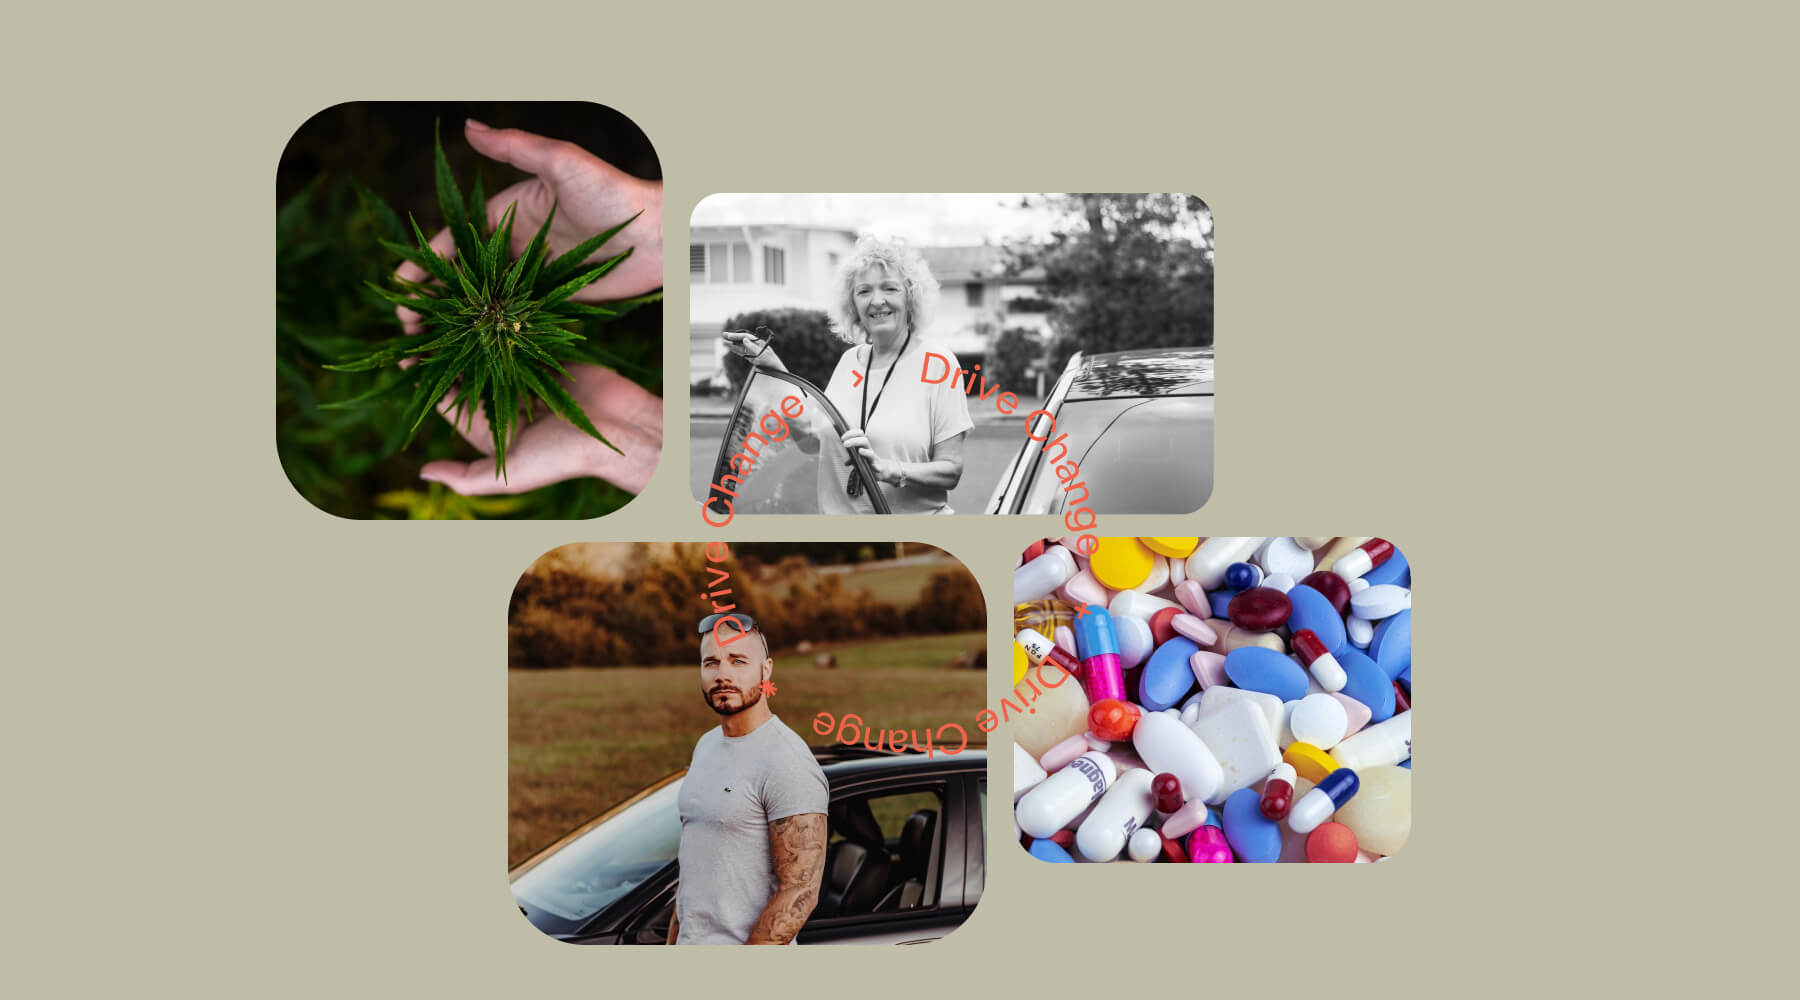 8 Problems With Current Drug Driving Laws & Medicinal Cannabis